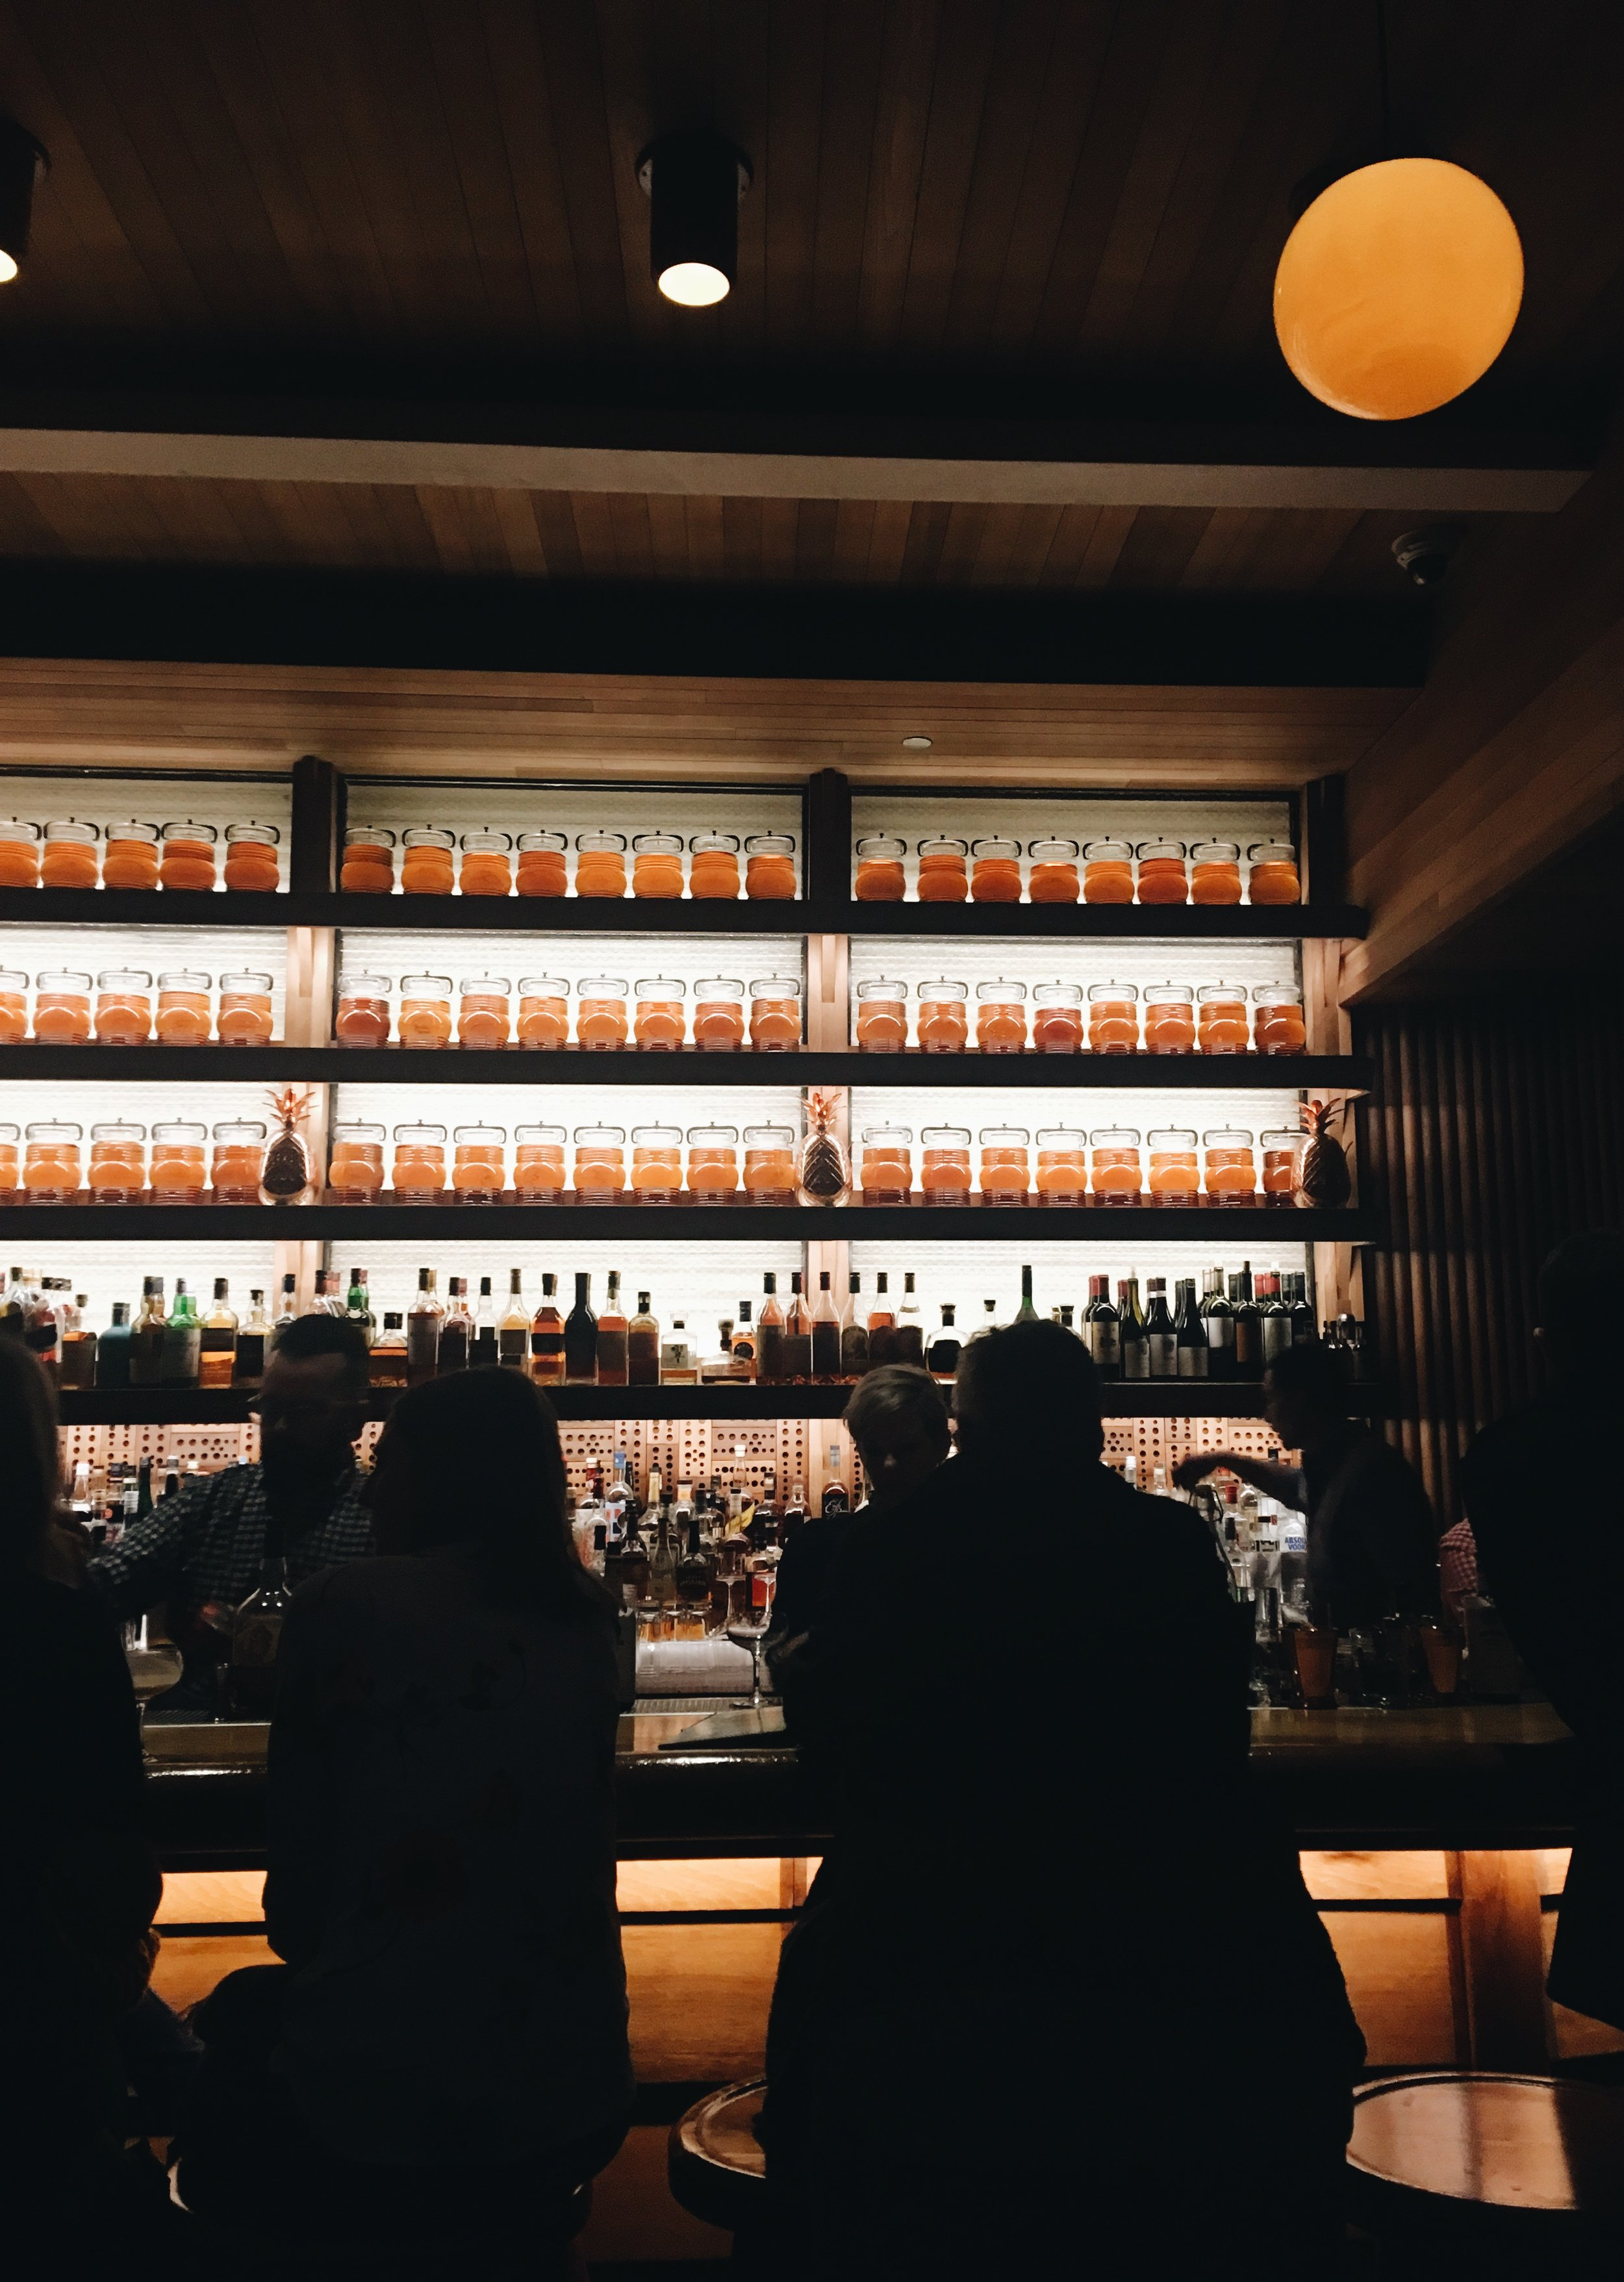 ^ This is the prettiest bar I've ever seen